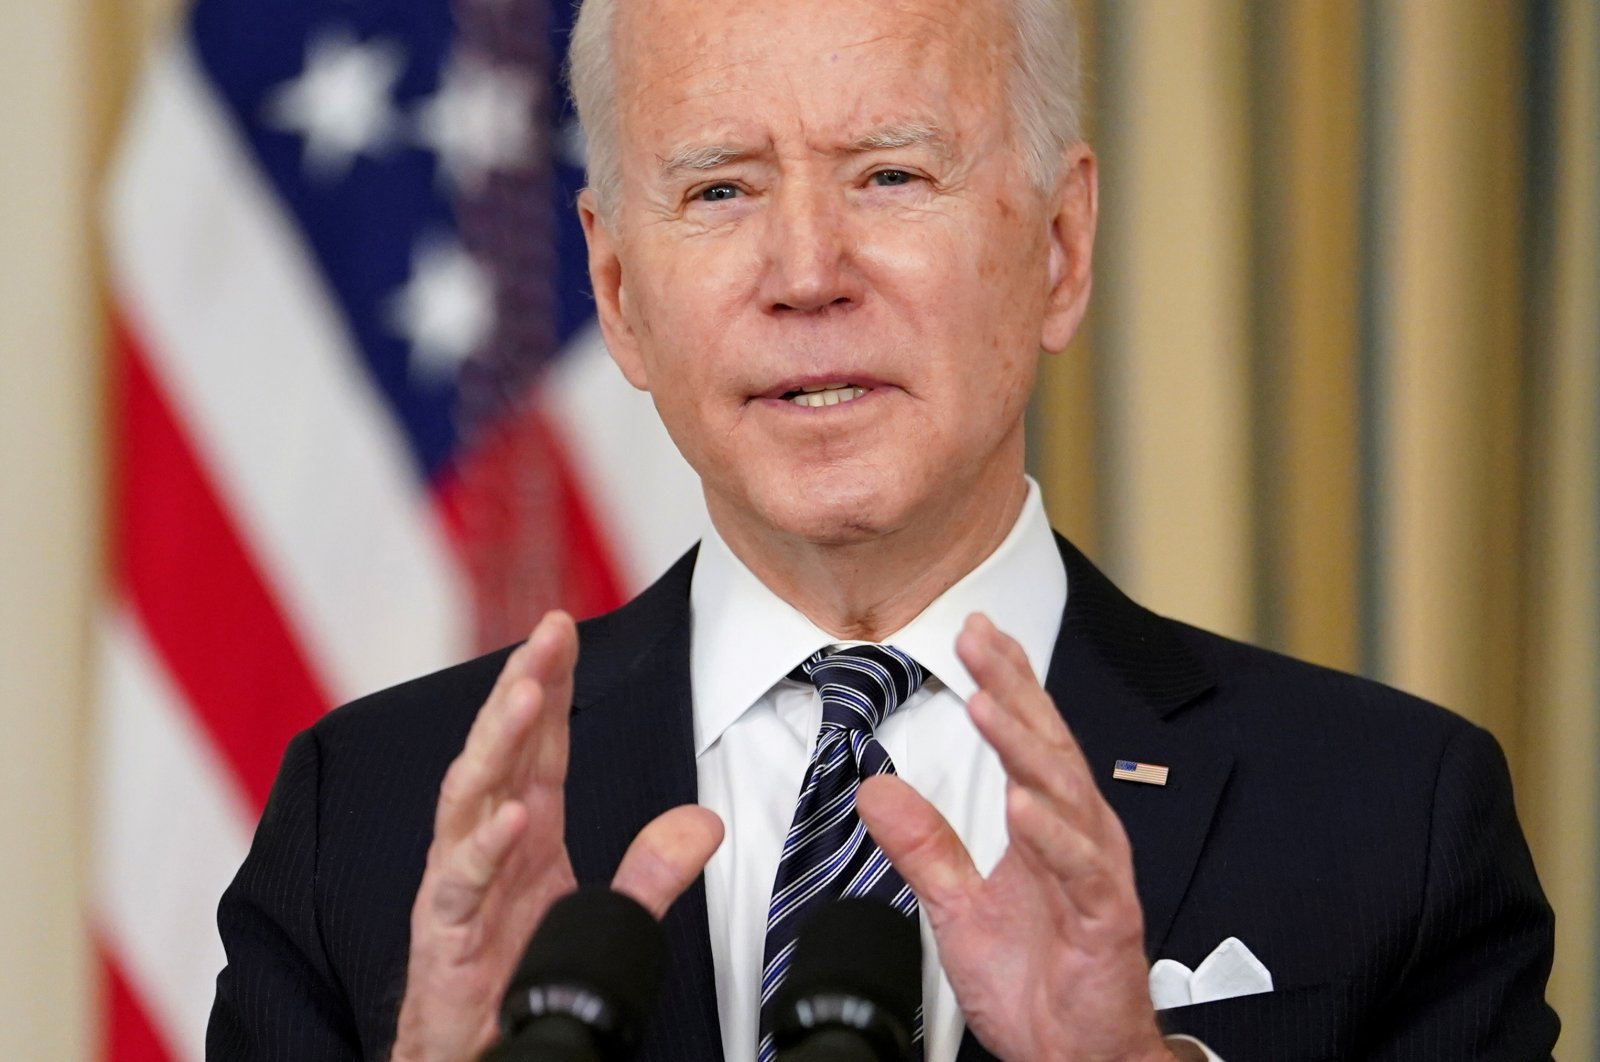 U.S. President Joe Biden speaks about the implementation of the American Rescue Plan in the State Dining Room at the White House in Washington, U.S., March 15, 2021. (Reuters Photo)